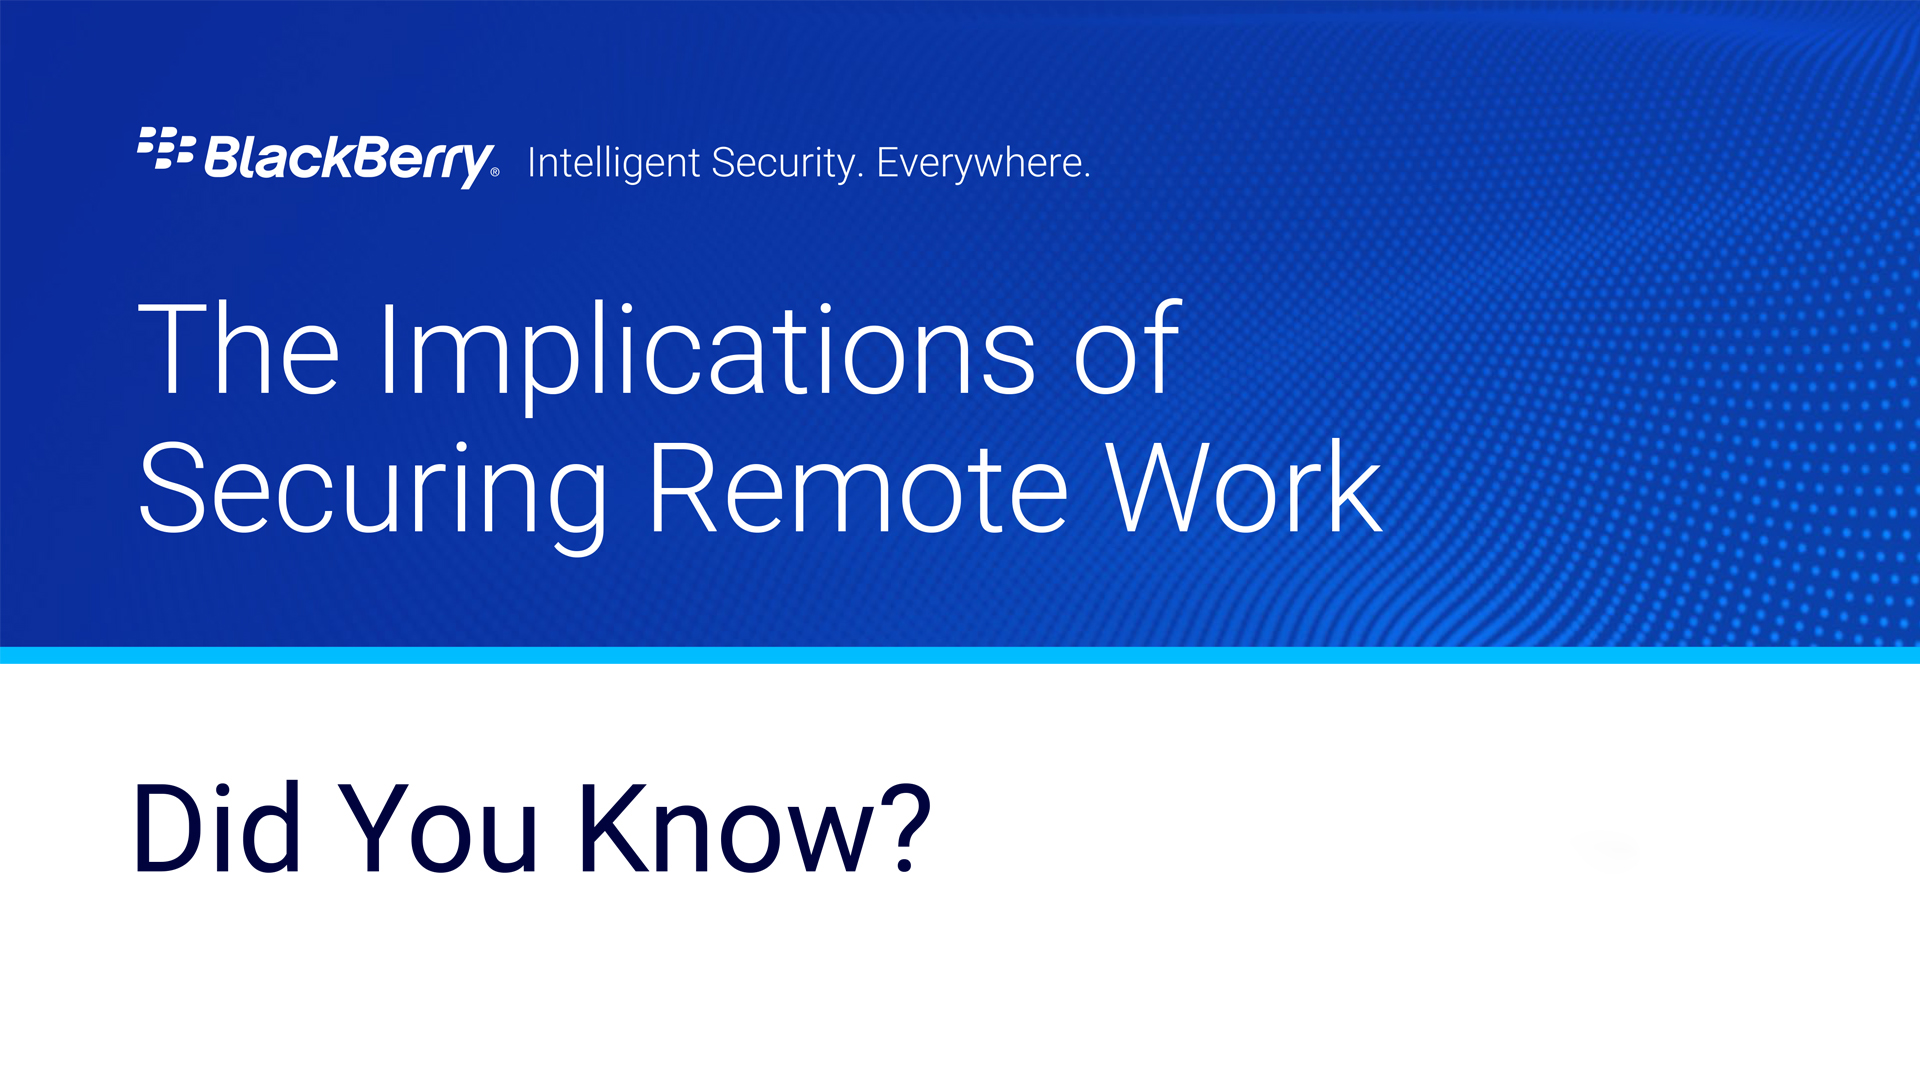 Security implications of enabling remote work